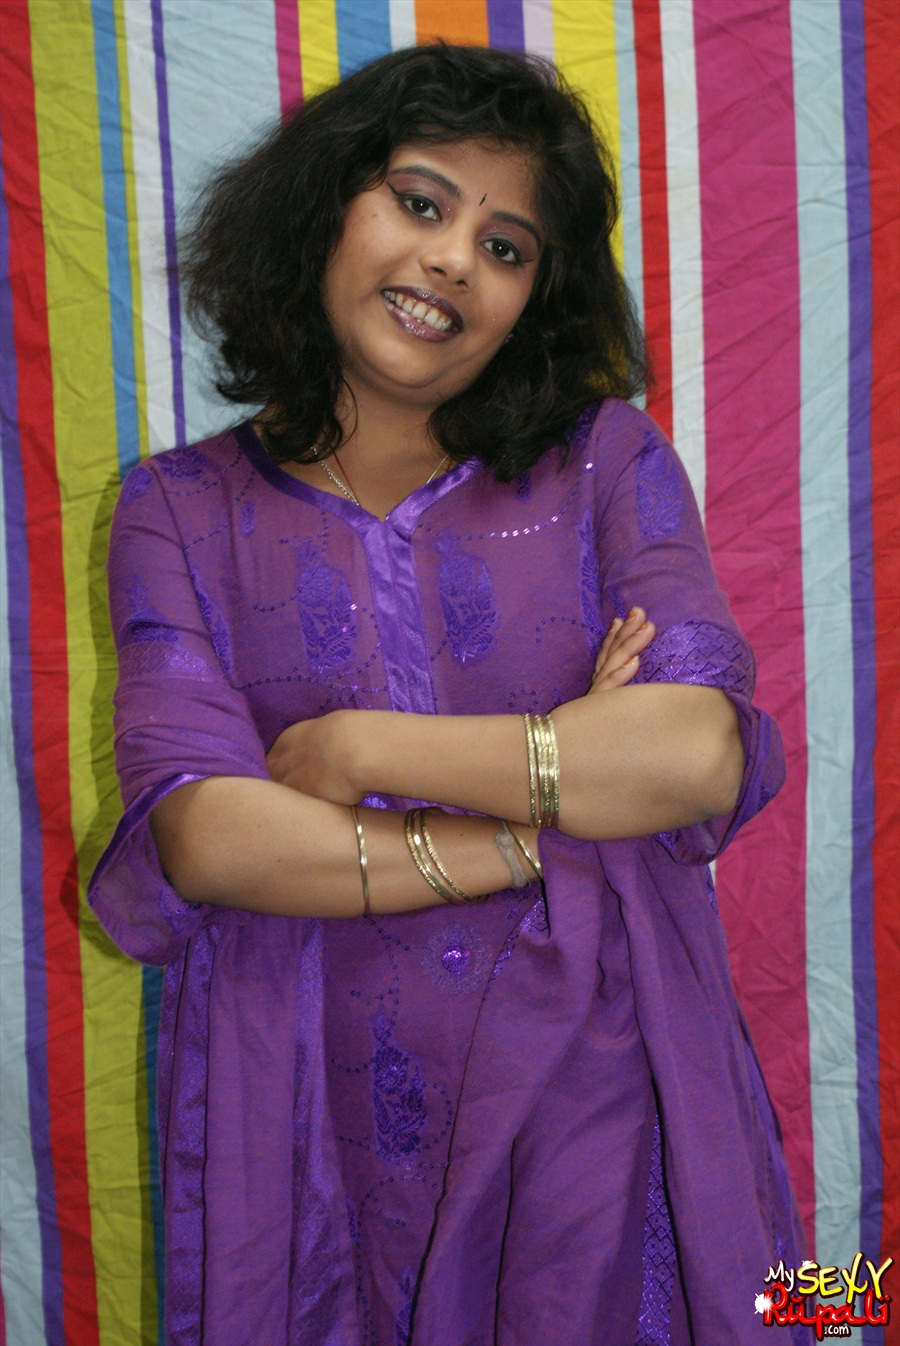 Iab picture gallery 24. Large tits rupali in purple Indian shalwar suit